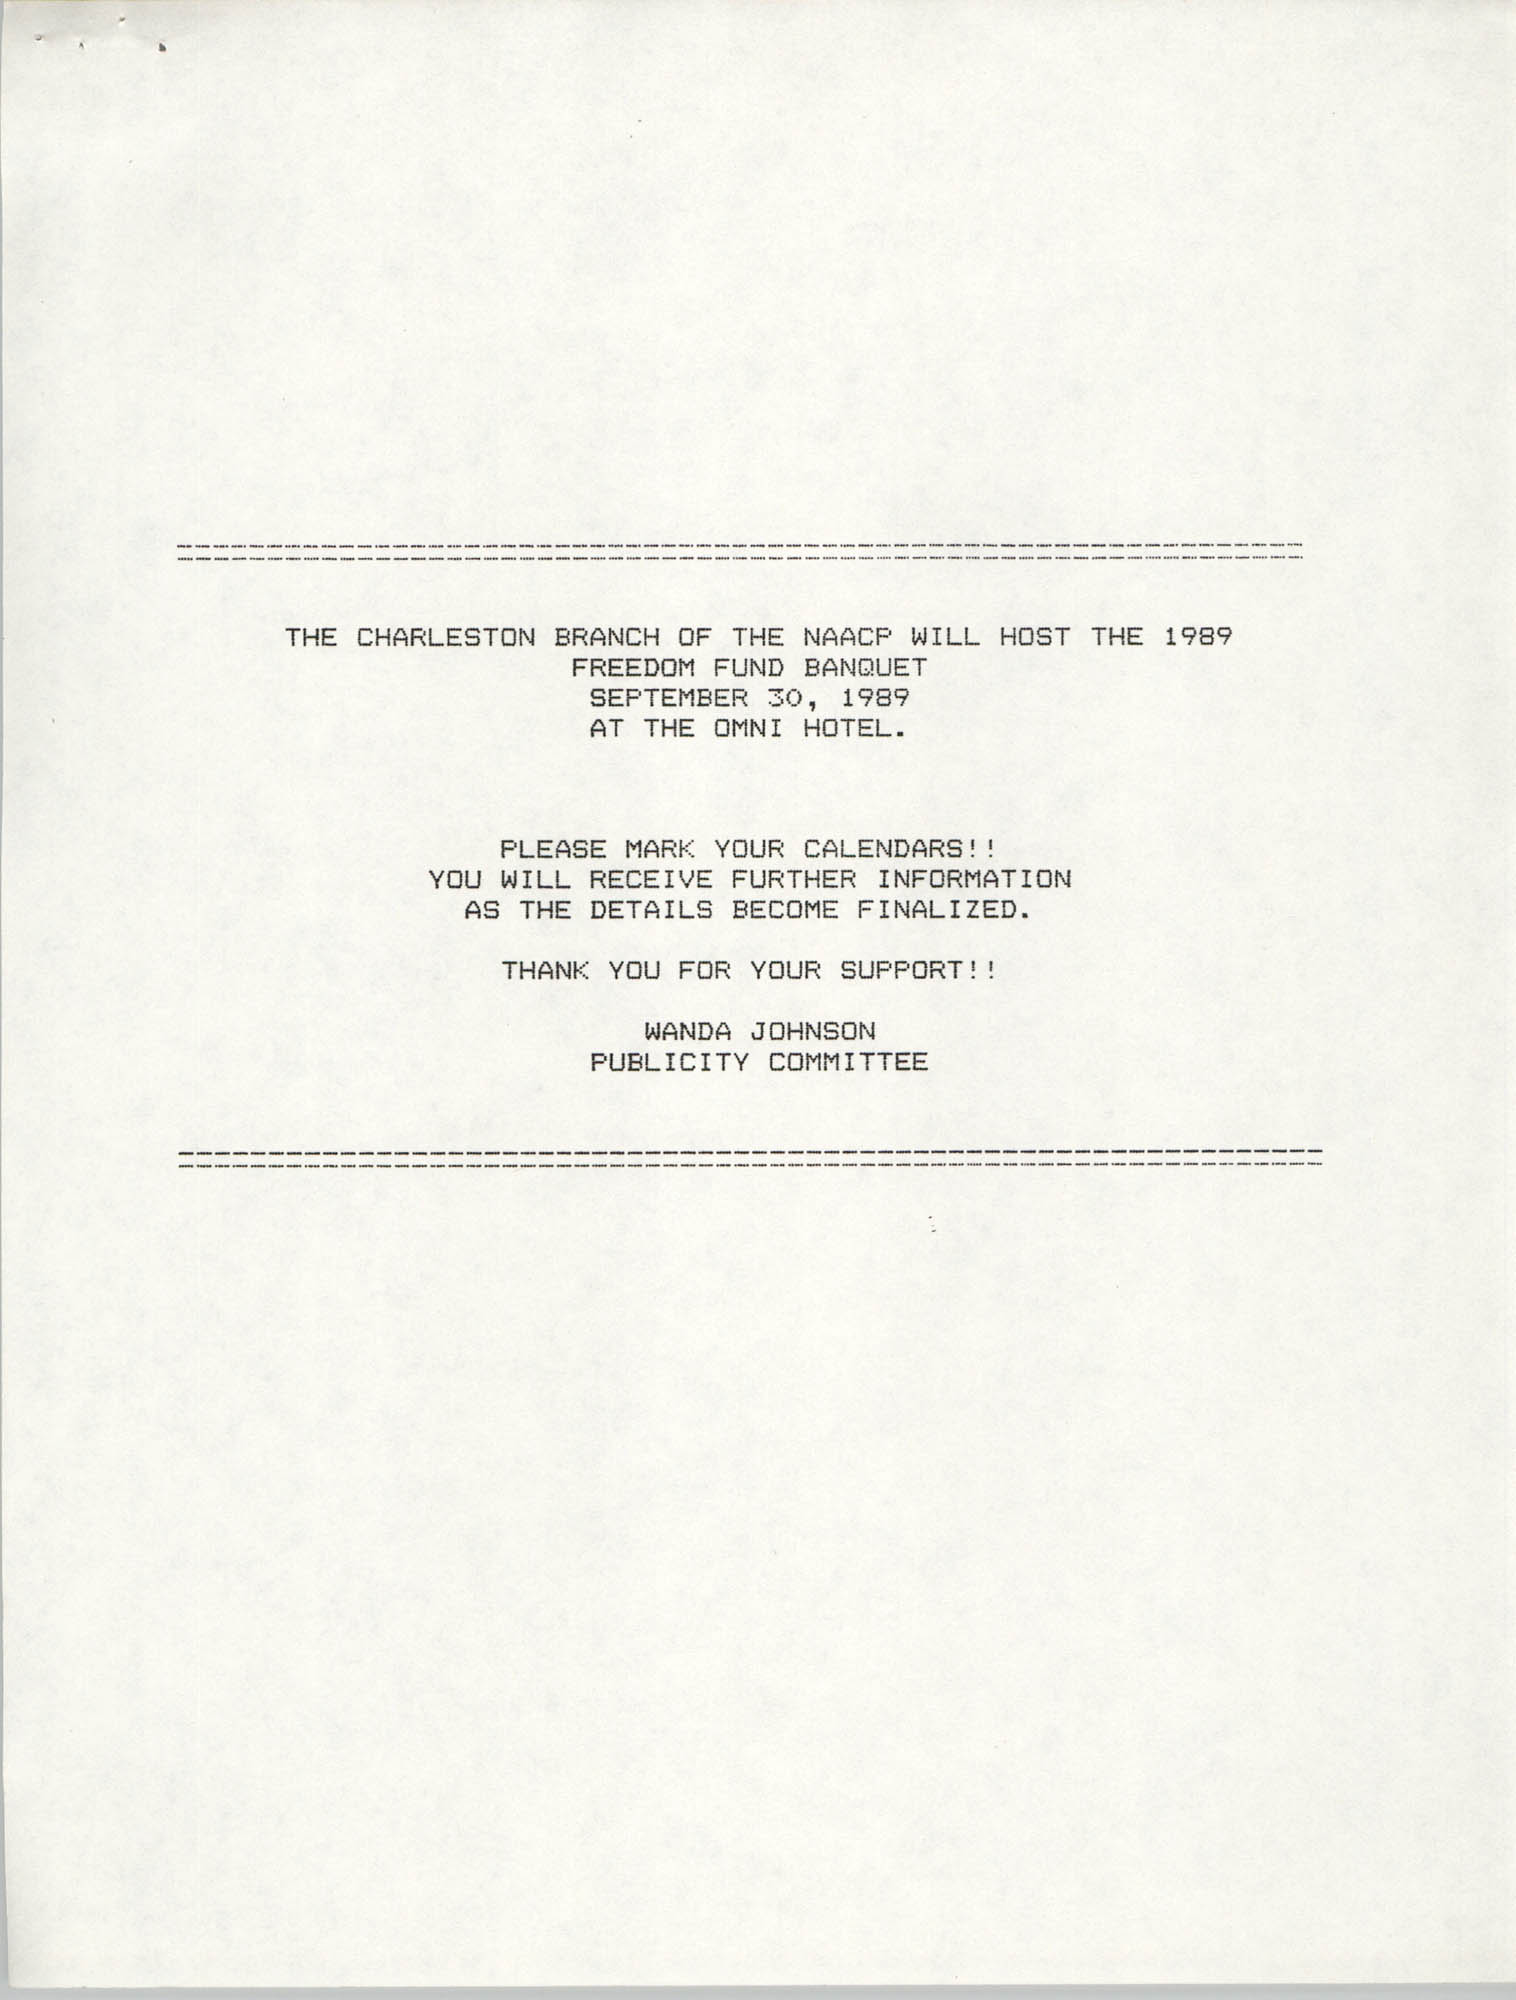 Press Release, 1989 Freedom Fund Banquet, Charleston Branch of the NAACP, Wanda Johnson